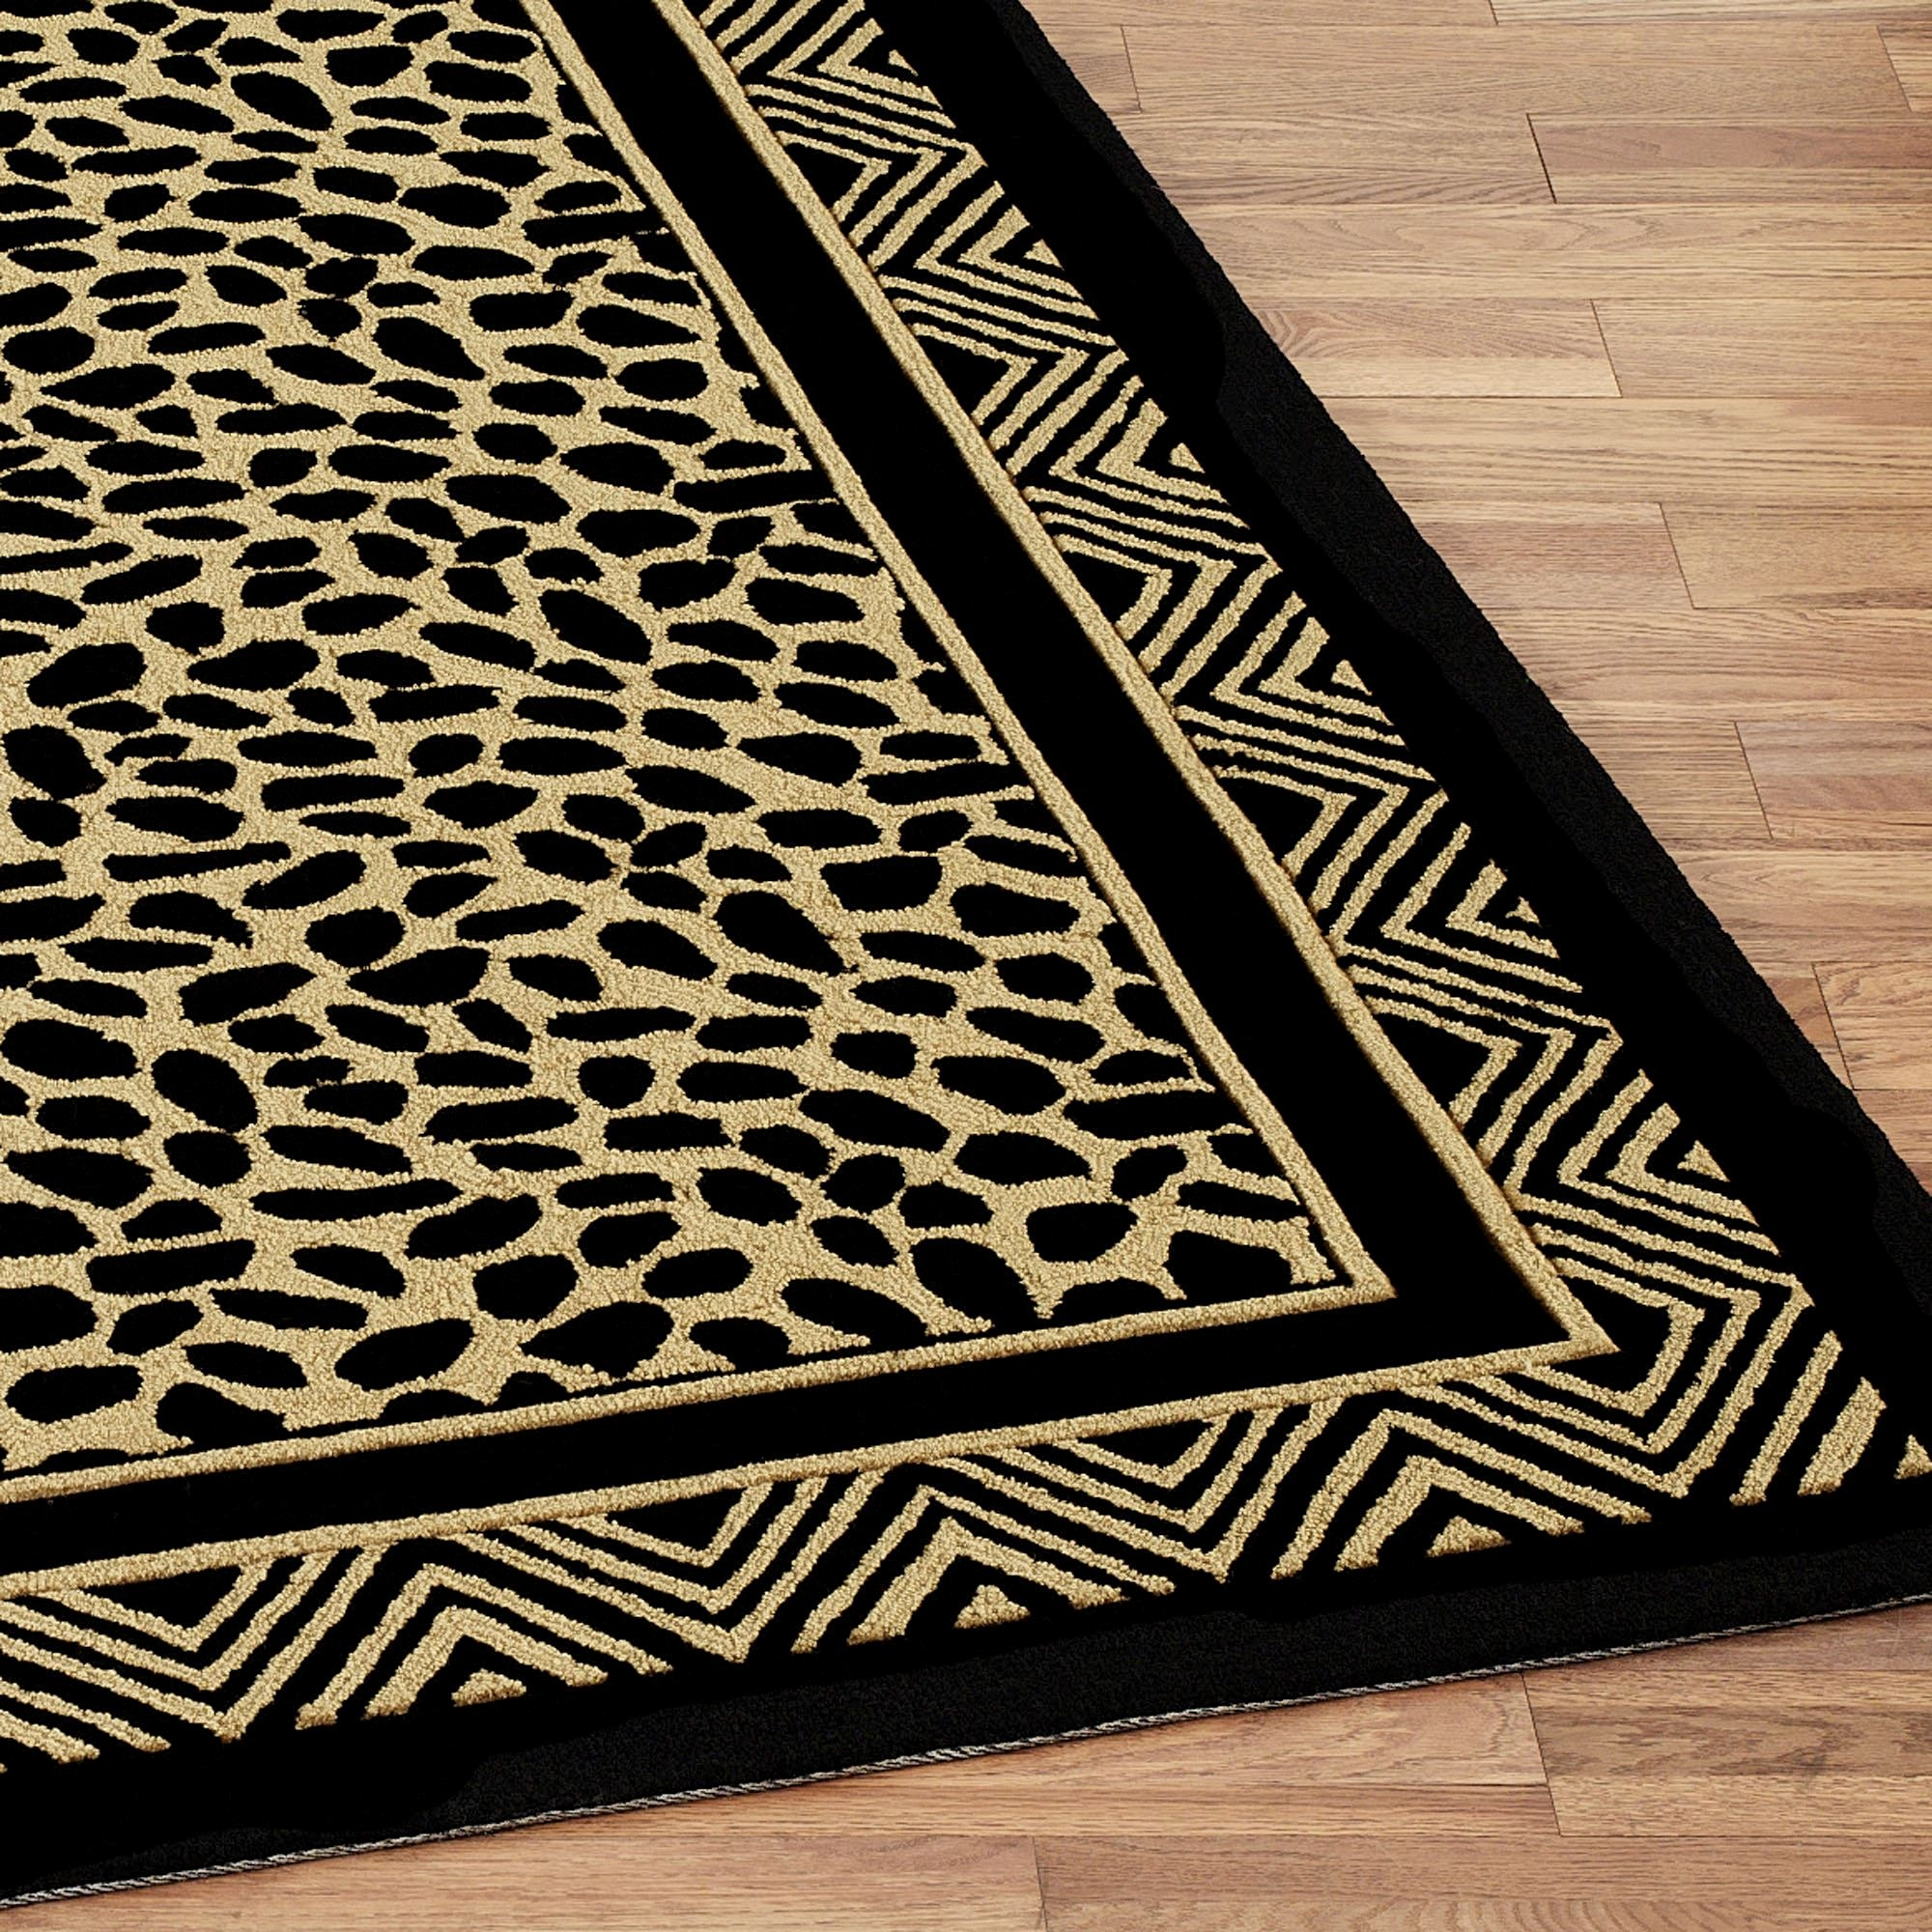 Wild Leopard Print Hooked Area Rugs | Leopard Carpet On Stairs | Diamond Pattern | Fawn | Stark | Carpeted | Striped